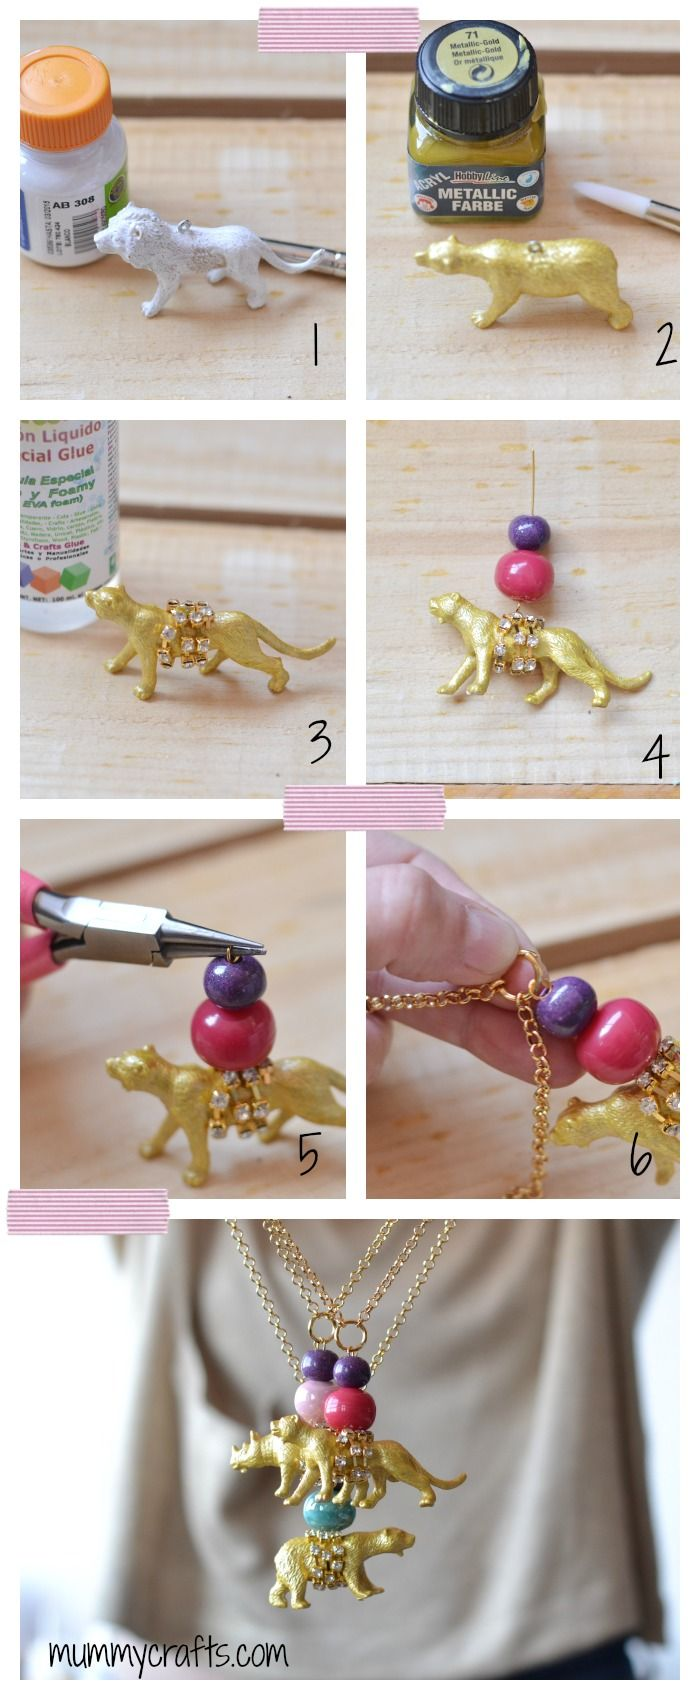 how to make necklaces with plastic animals step by step diy create pinterest. Black Bedroom Furniture Sets. Home Design Ideas